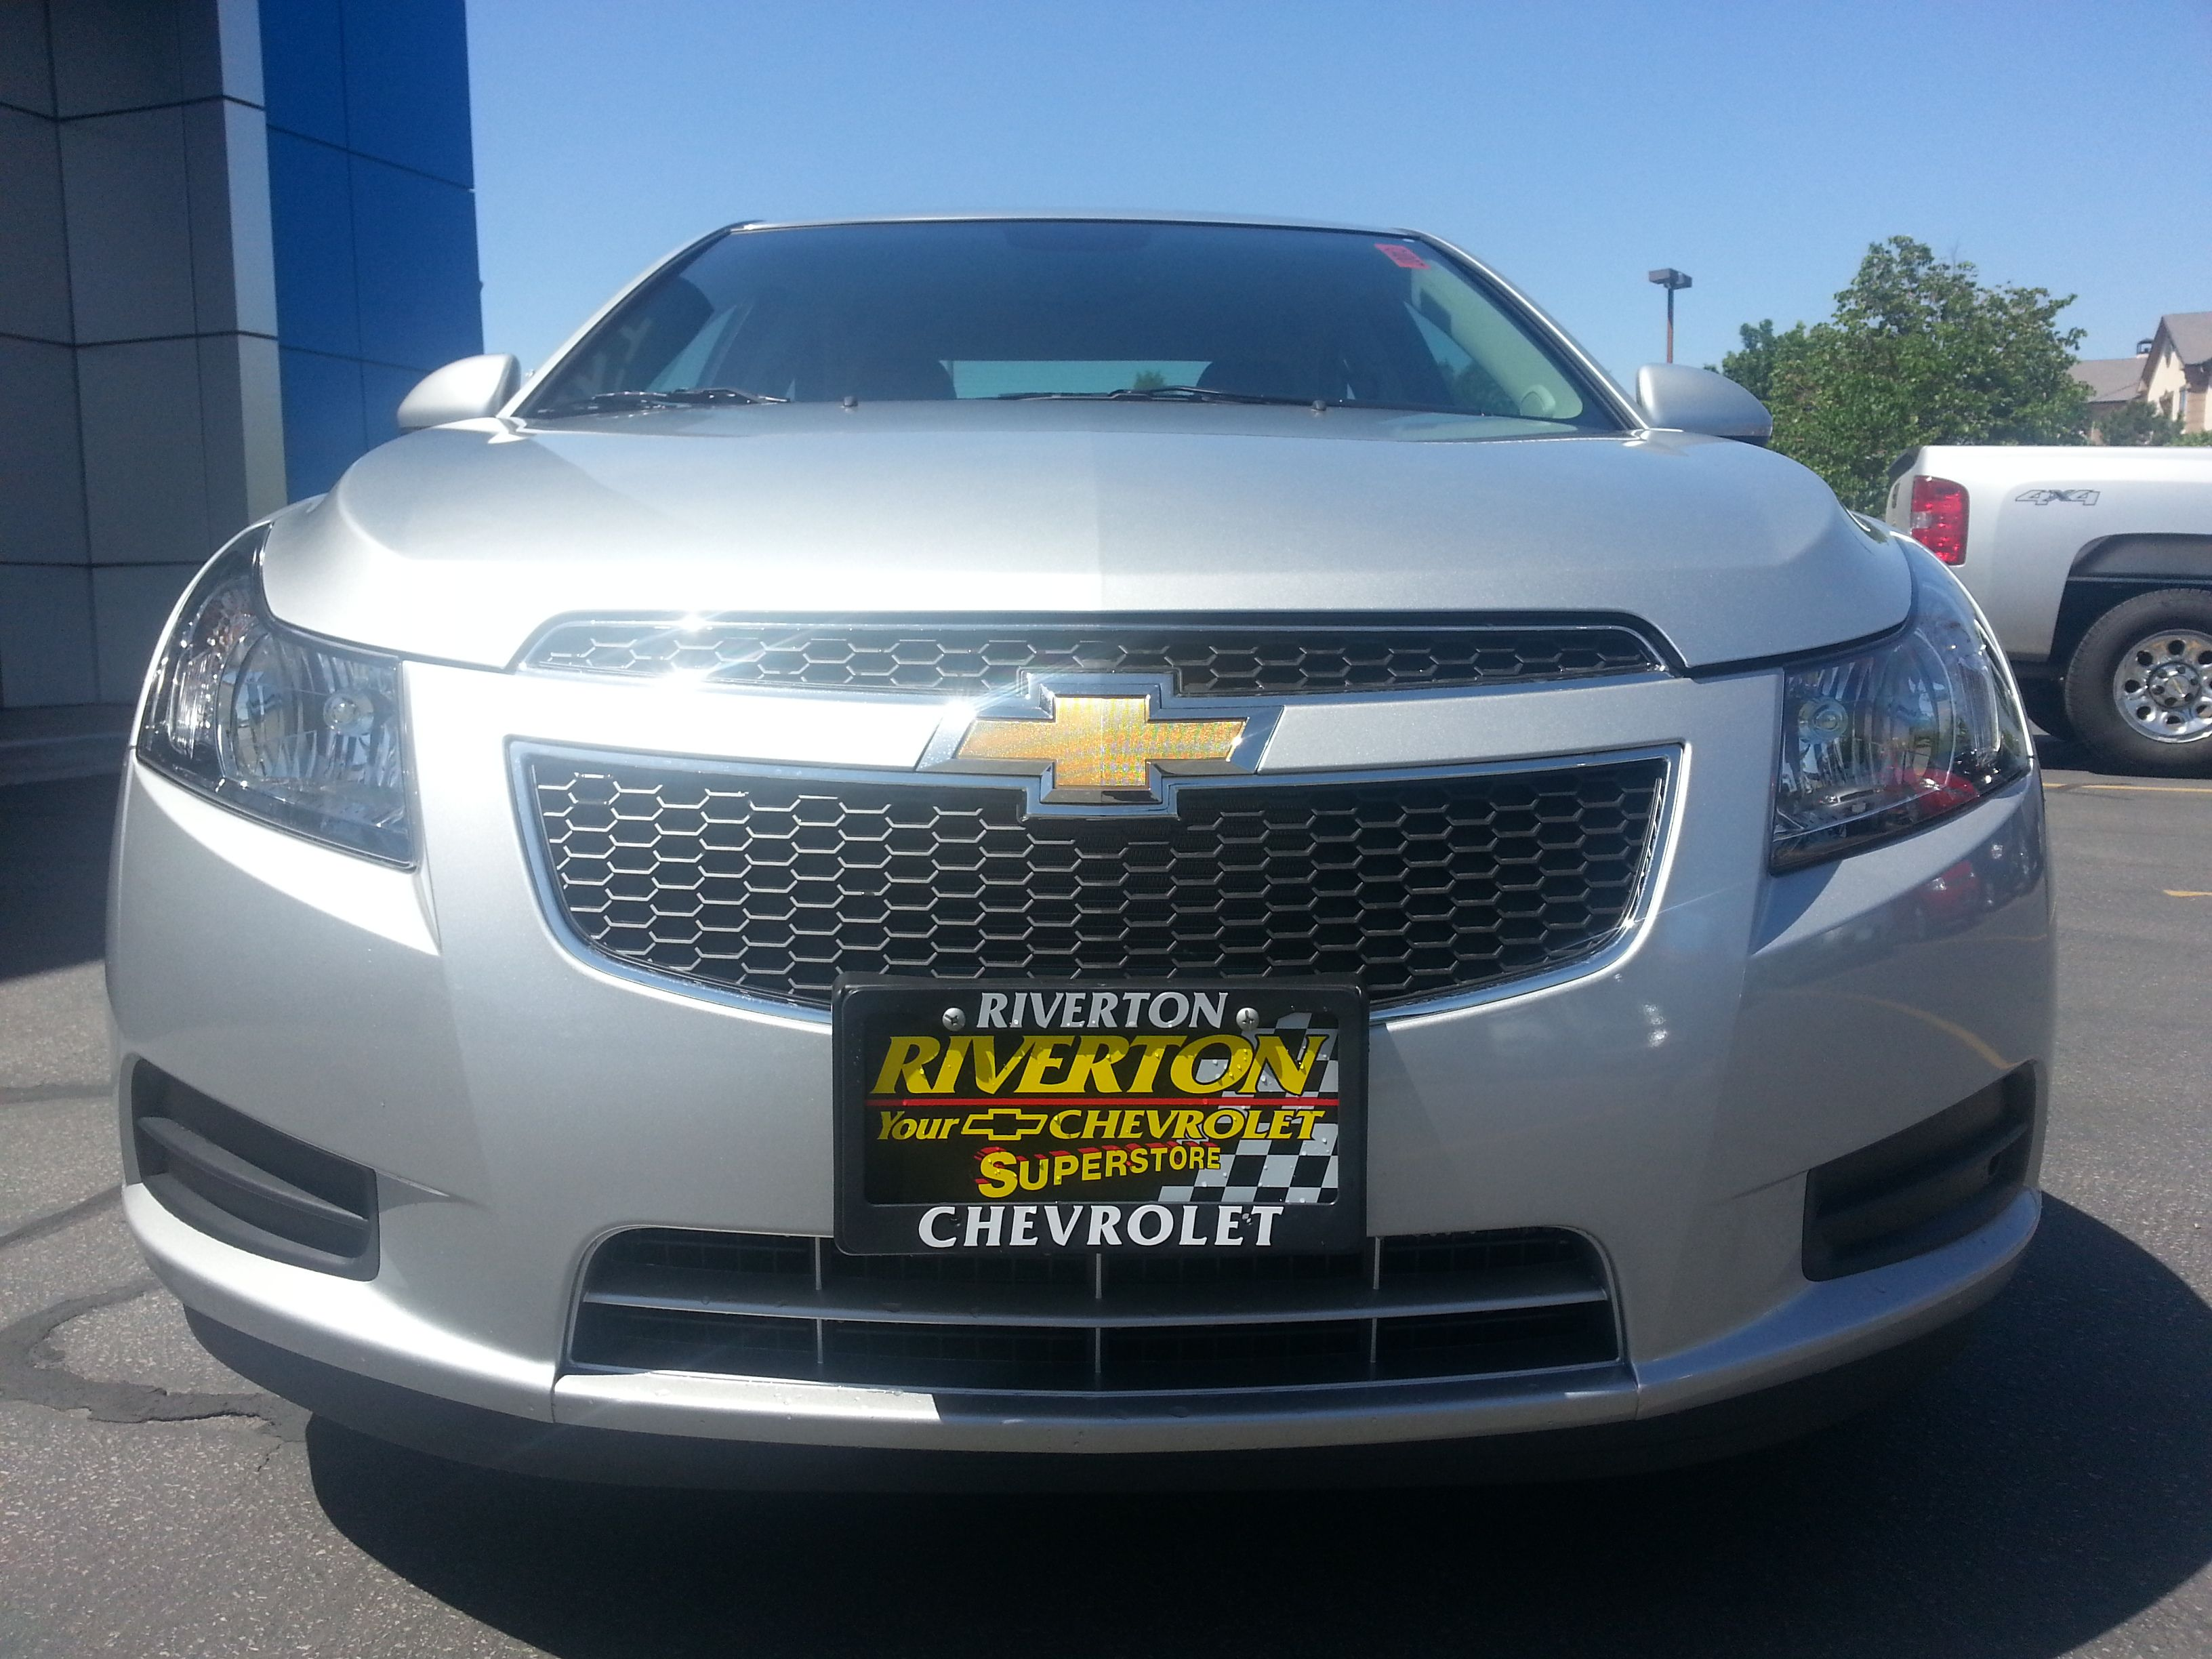 Chevy Dealer Utah >> Pin By Riverton Chevy On 2014 Cruze Diesel Chevy Dealers